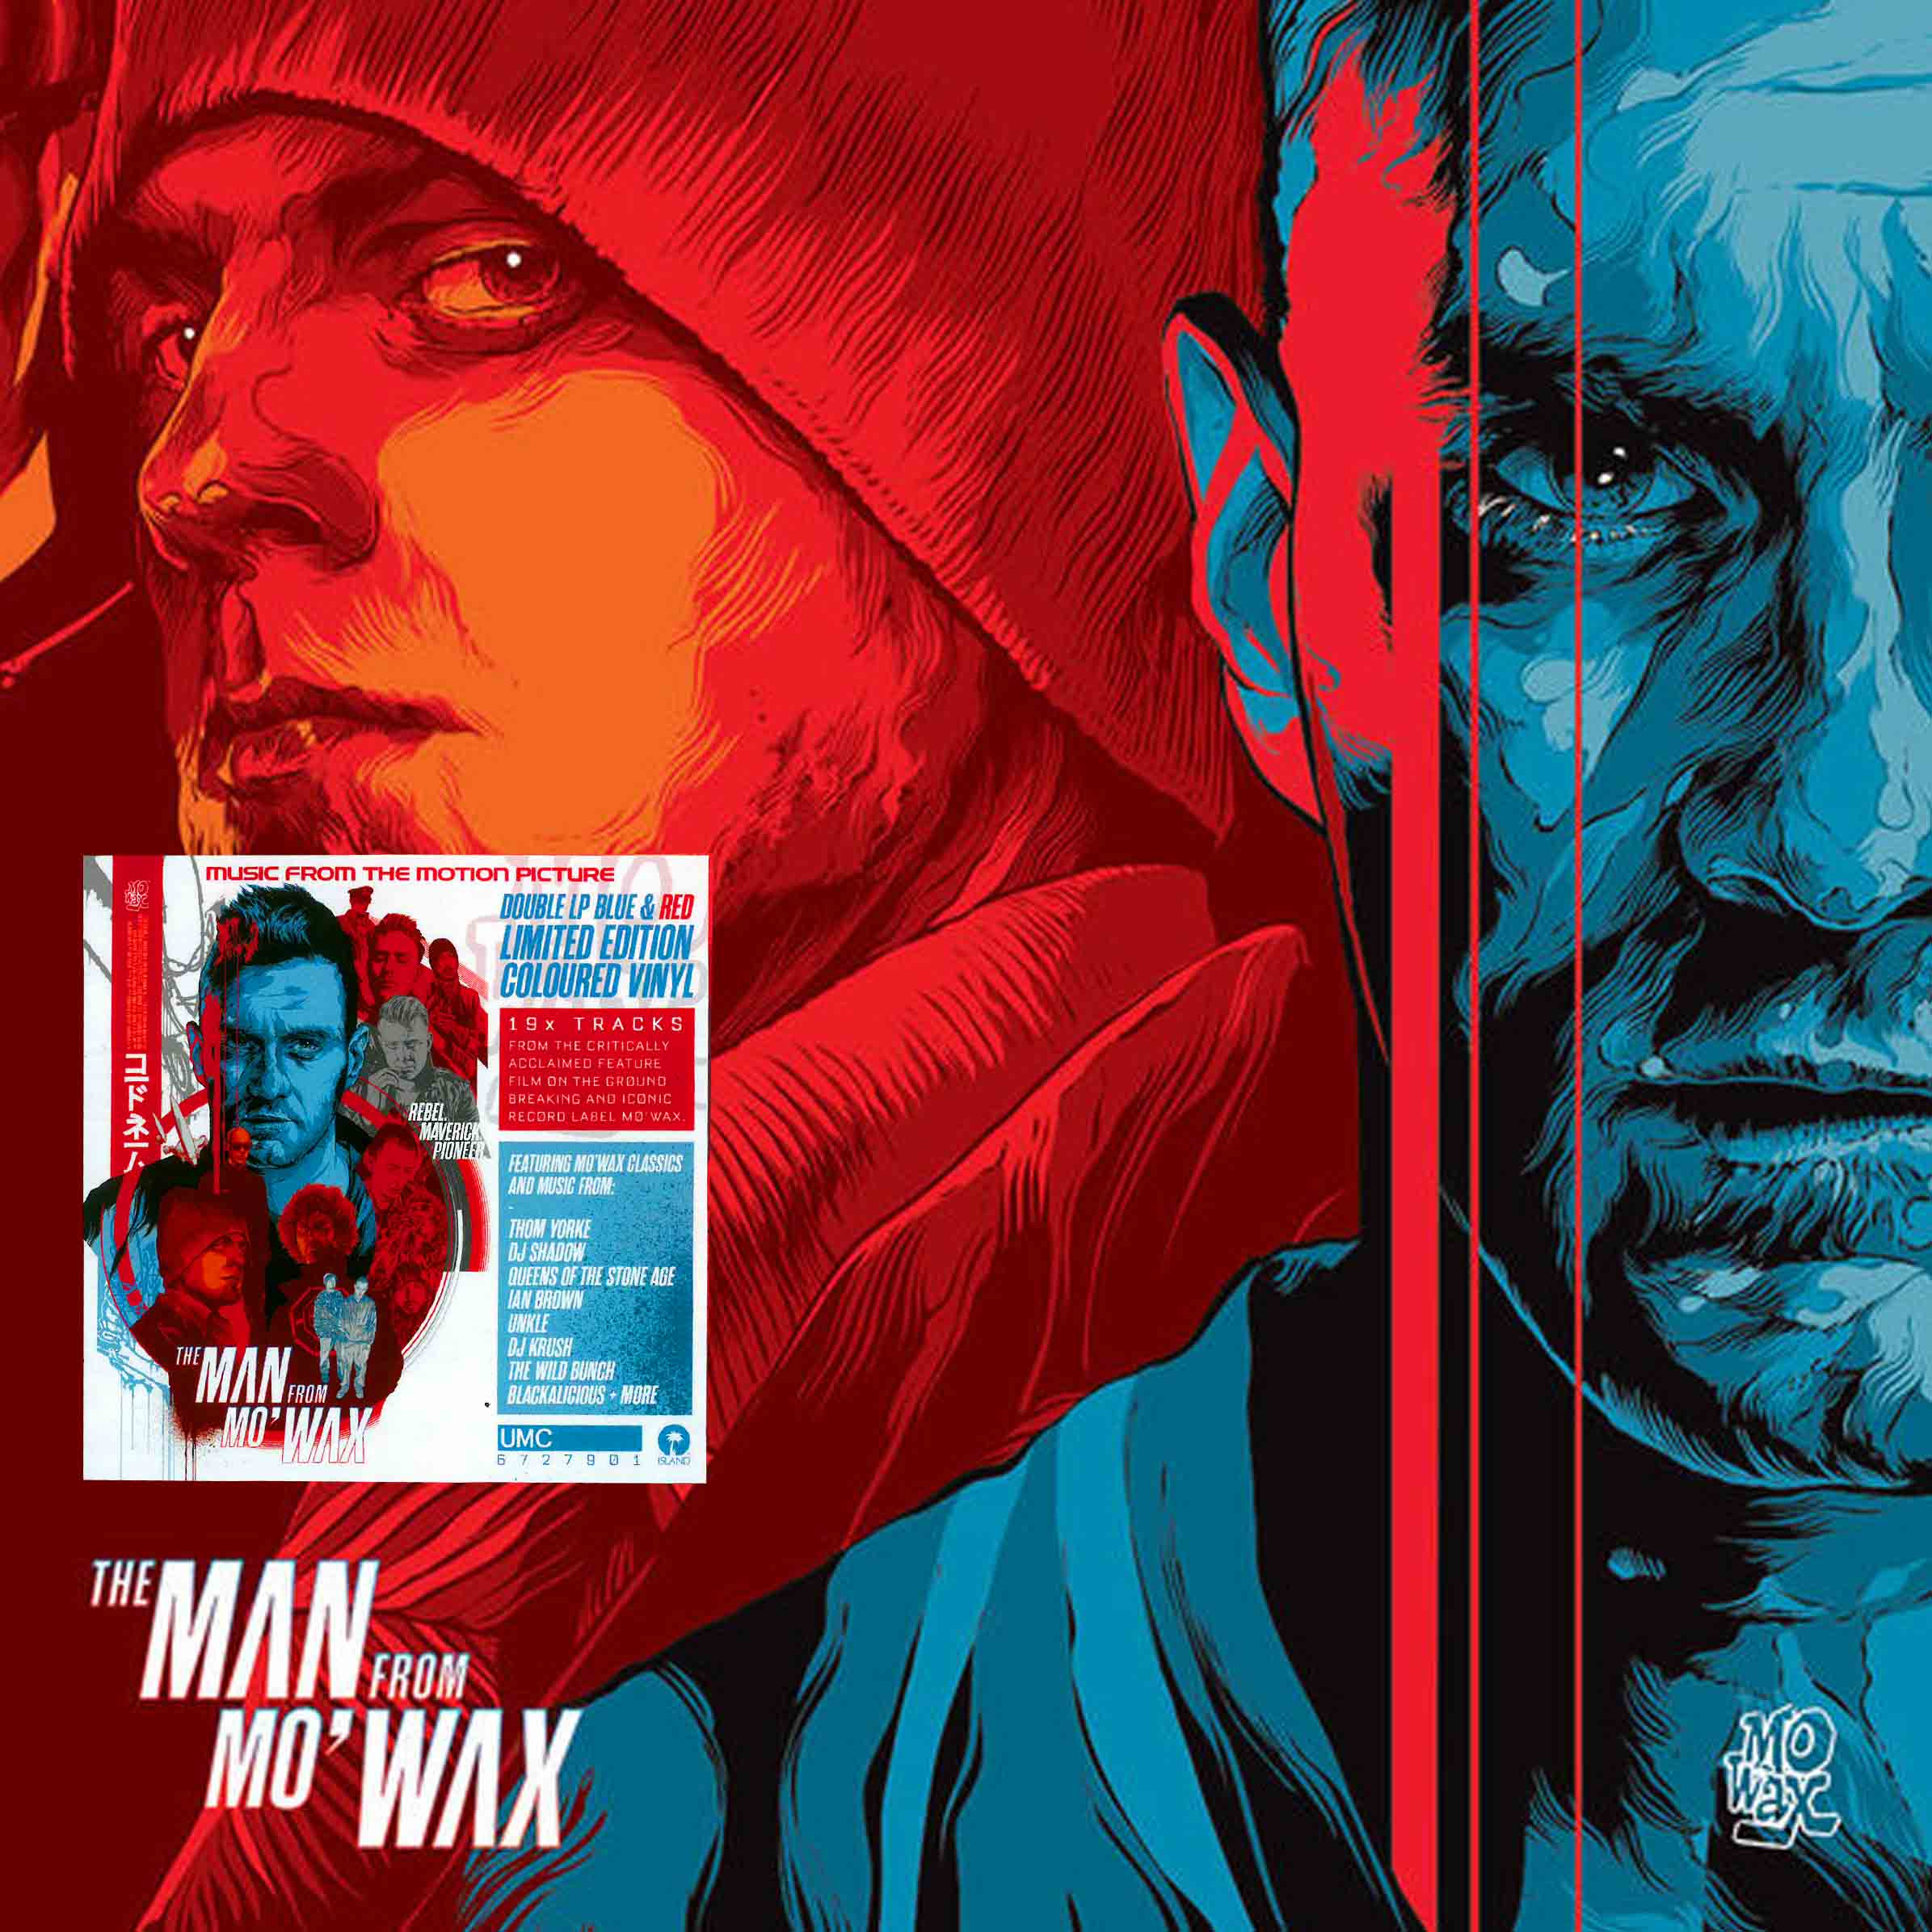 Buy The Man From Mo'Wax Soundtrack vinyl LP